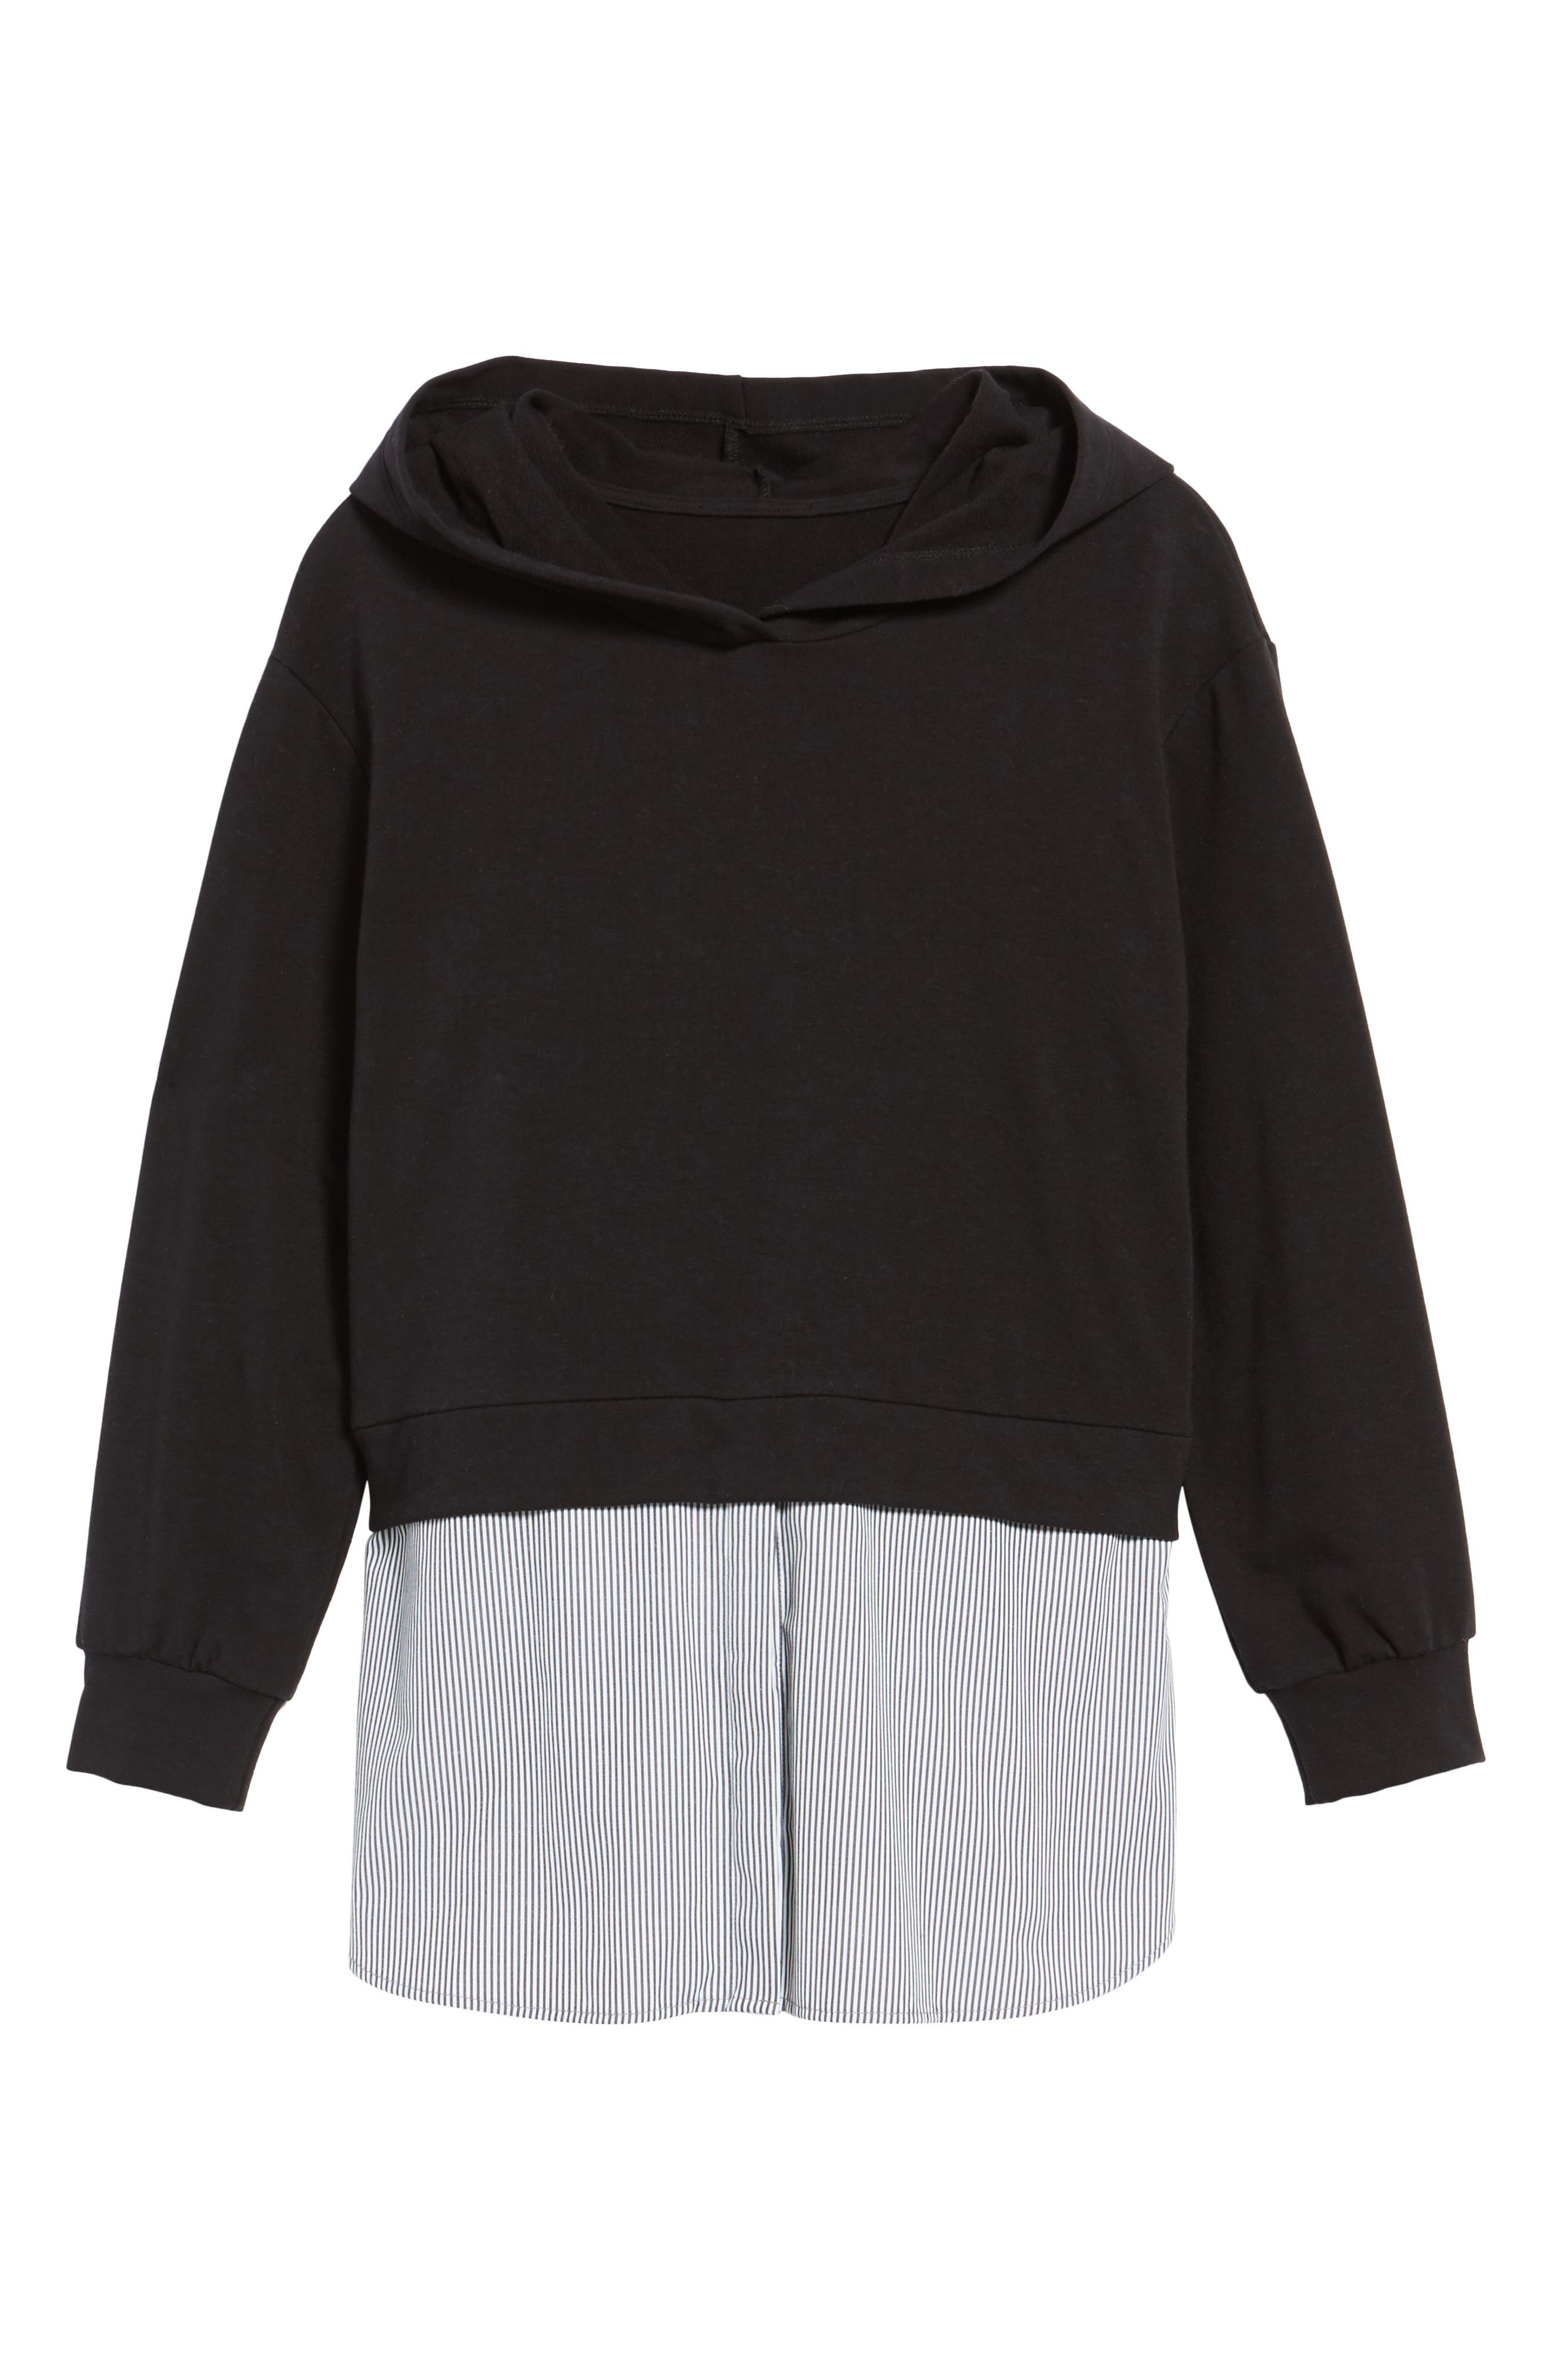 Layered Look Hoodie,                             Alternate thumbnail 6, color,                             001